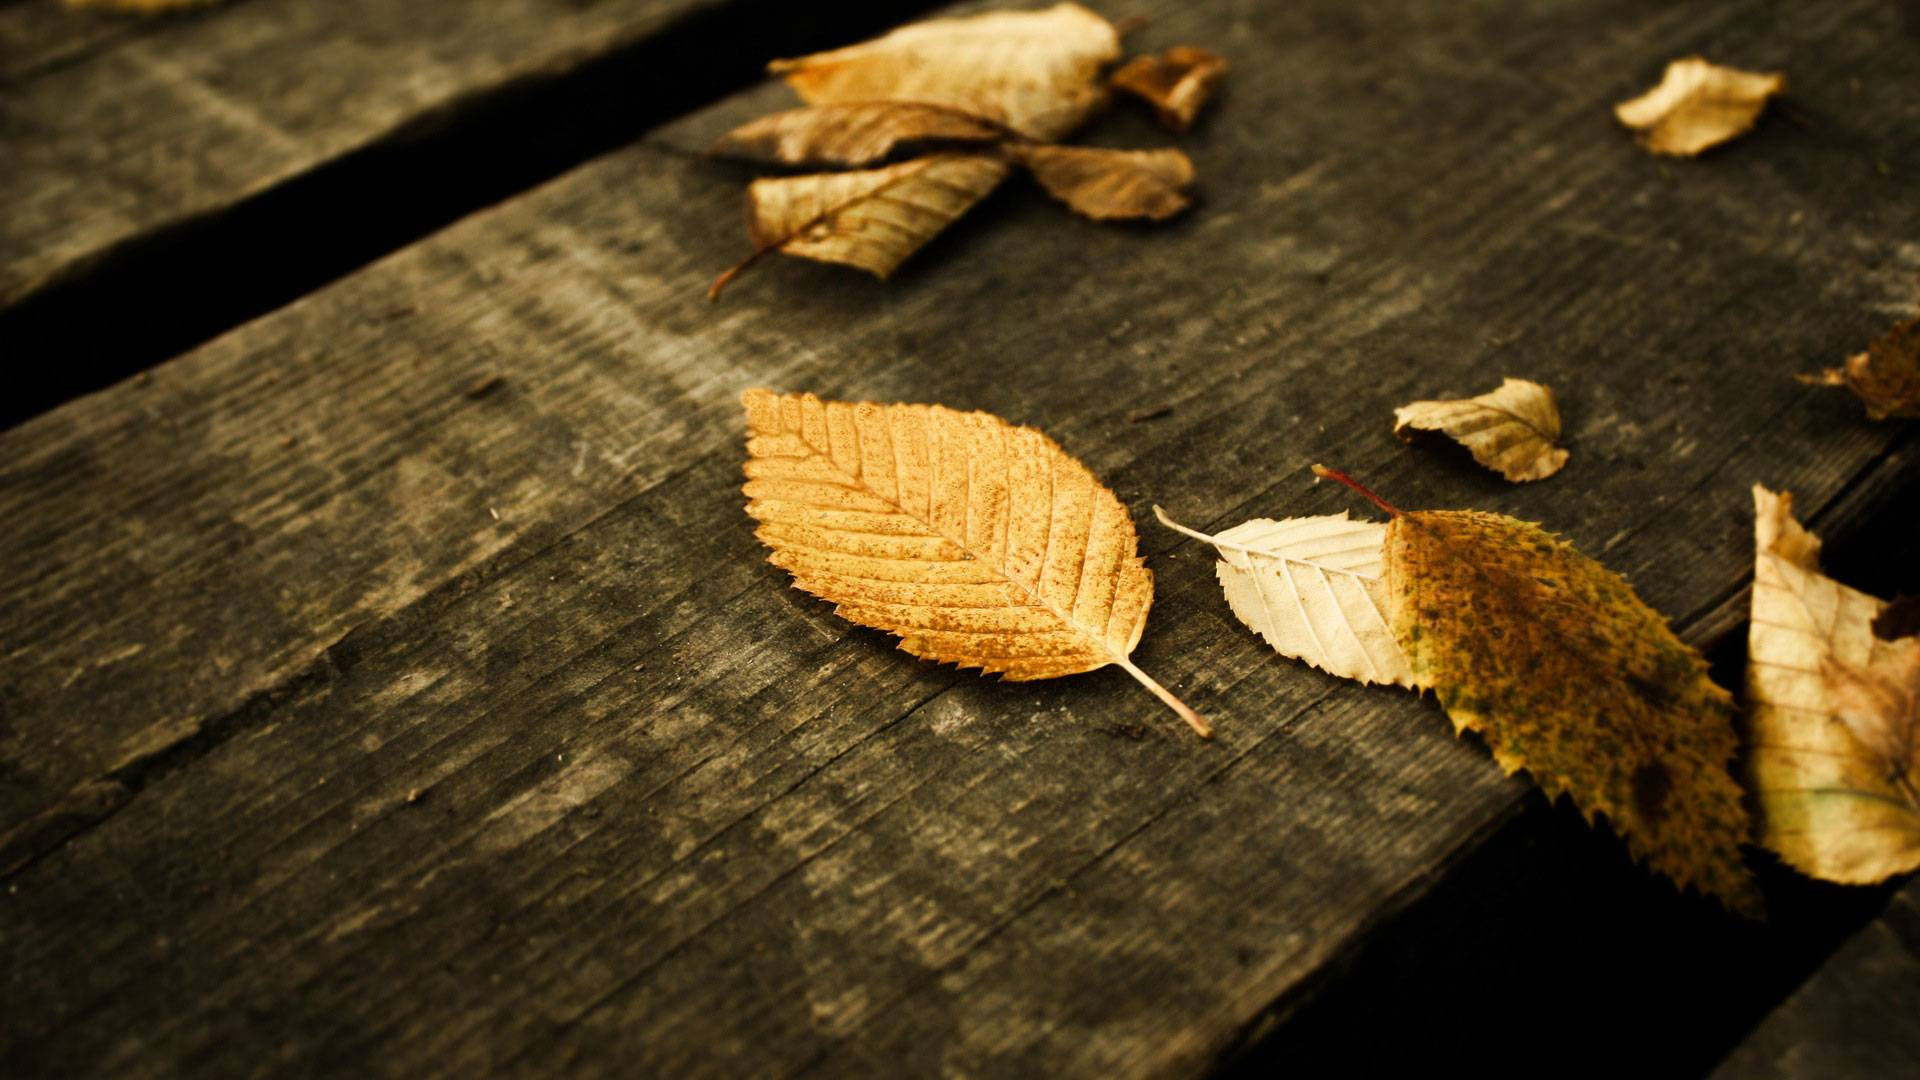 Autumn-Falling-Leaf-Exclusive-HD-wallpaper-wp3402687